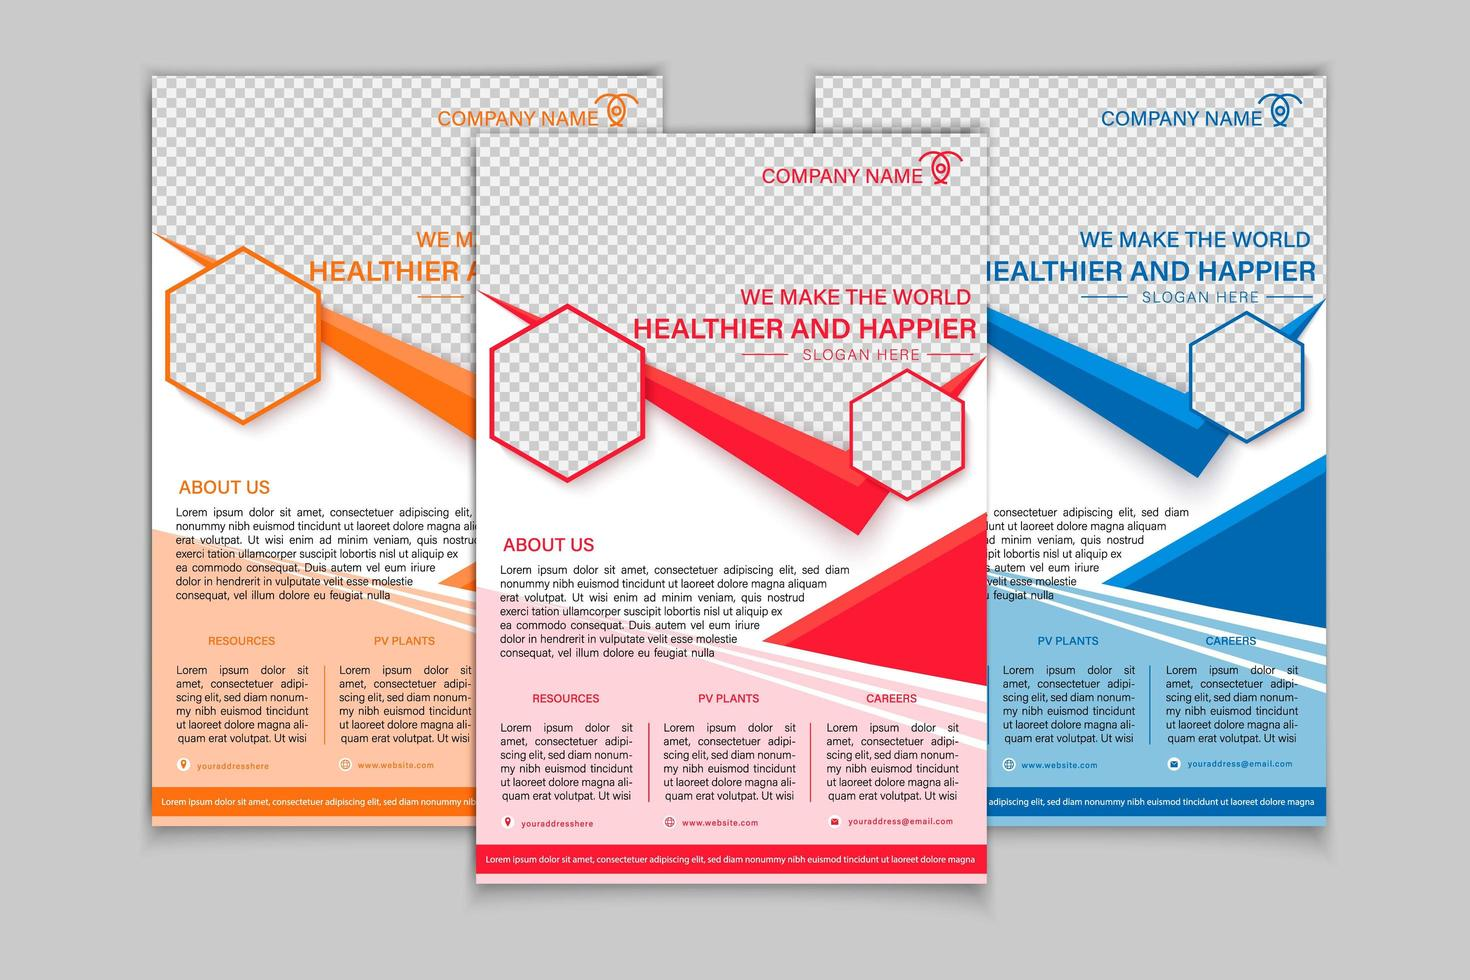 Flyers report infographic  vector